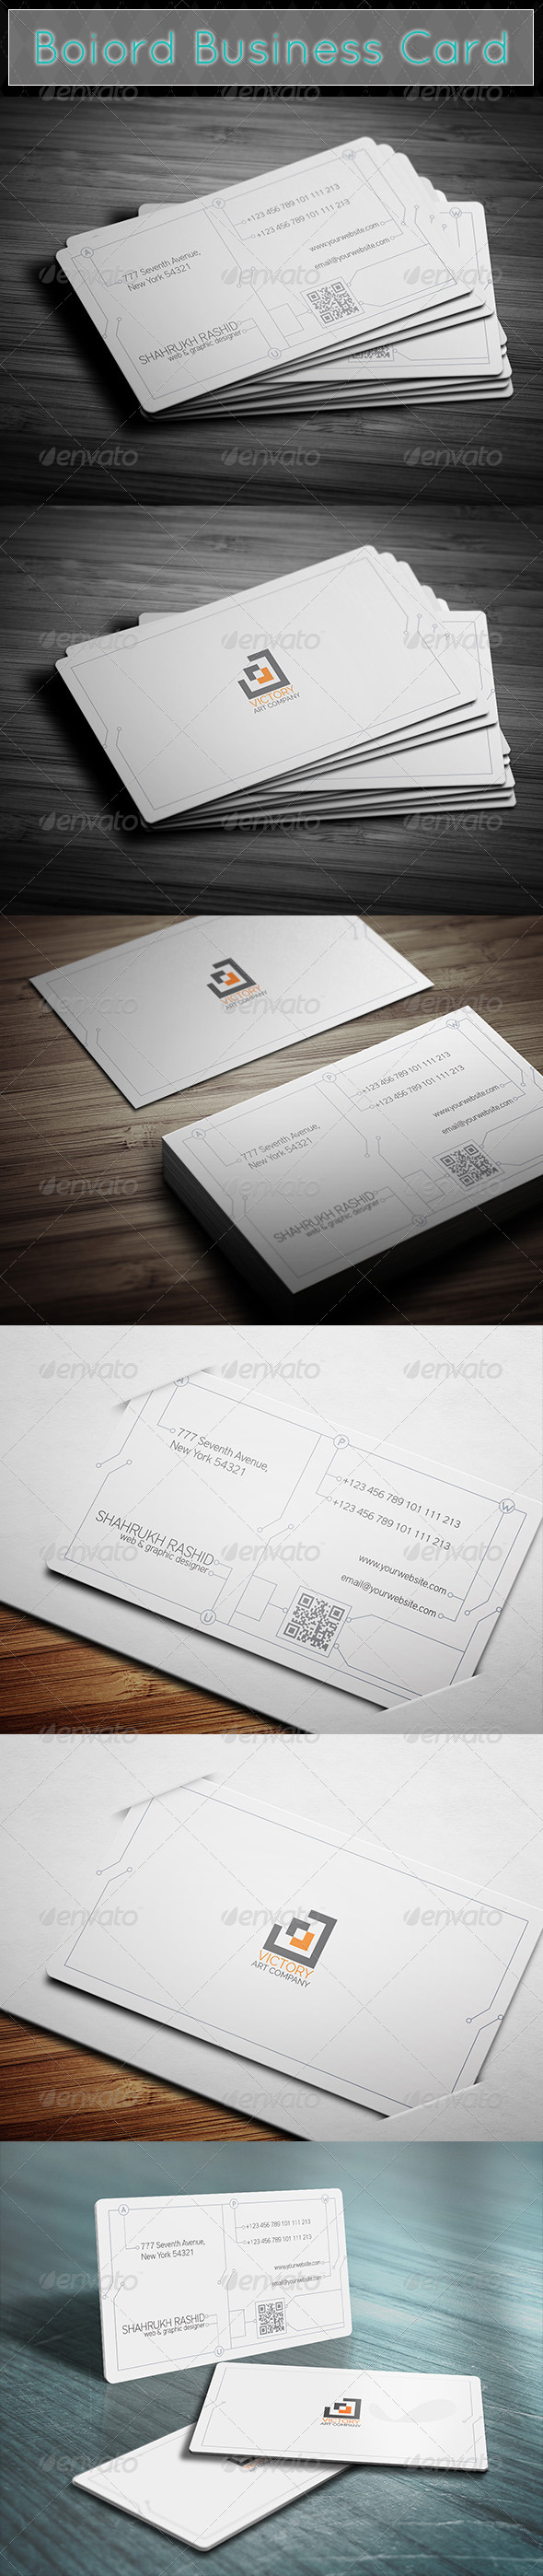 Boiord Business Card - Real Objects Business Cards